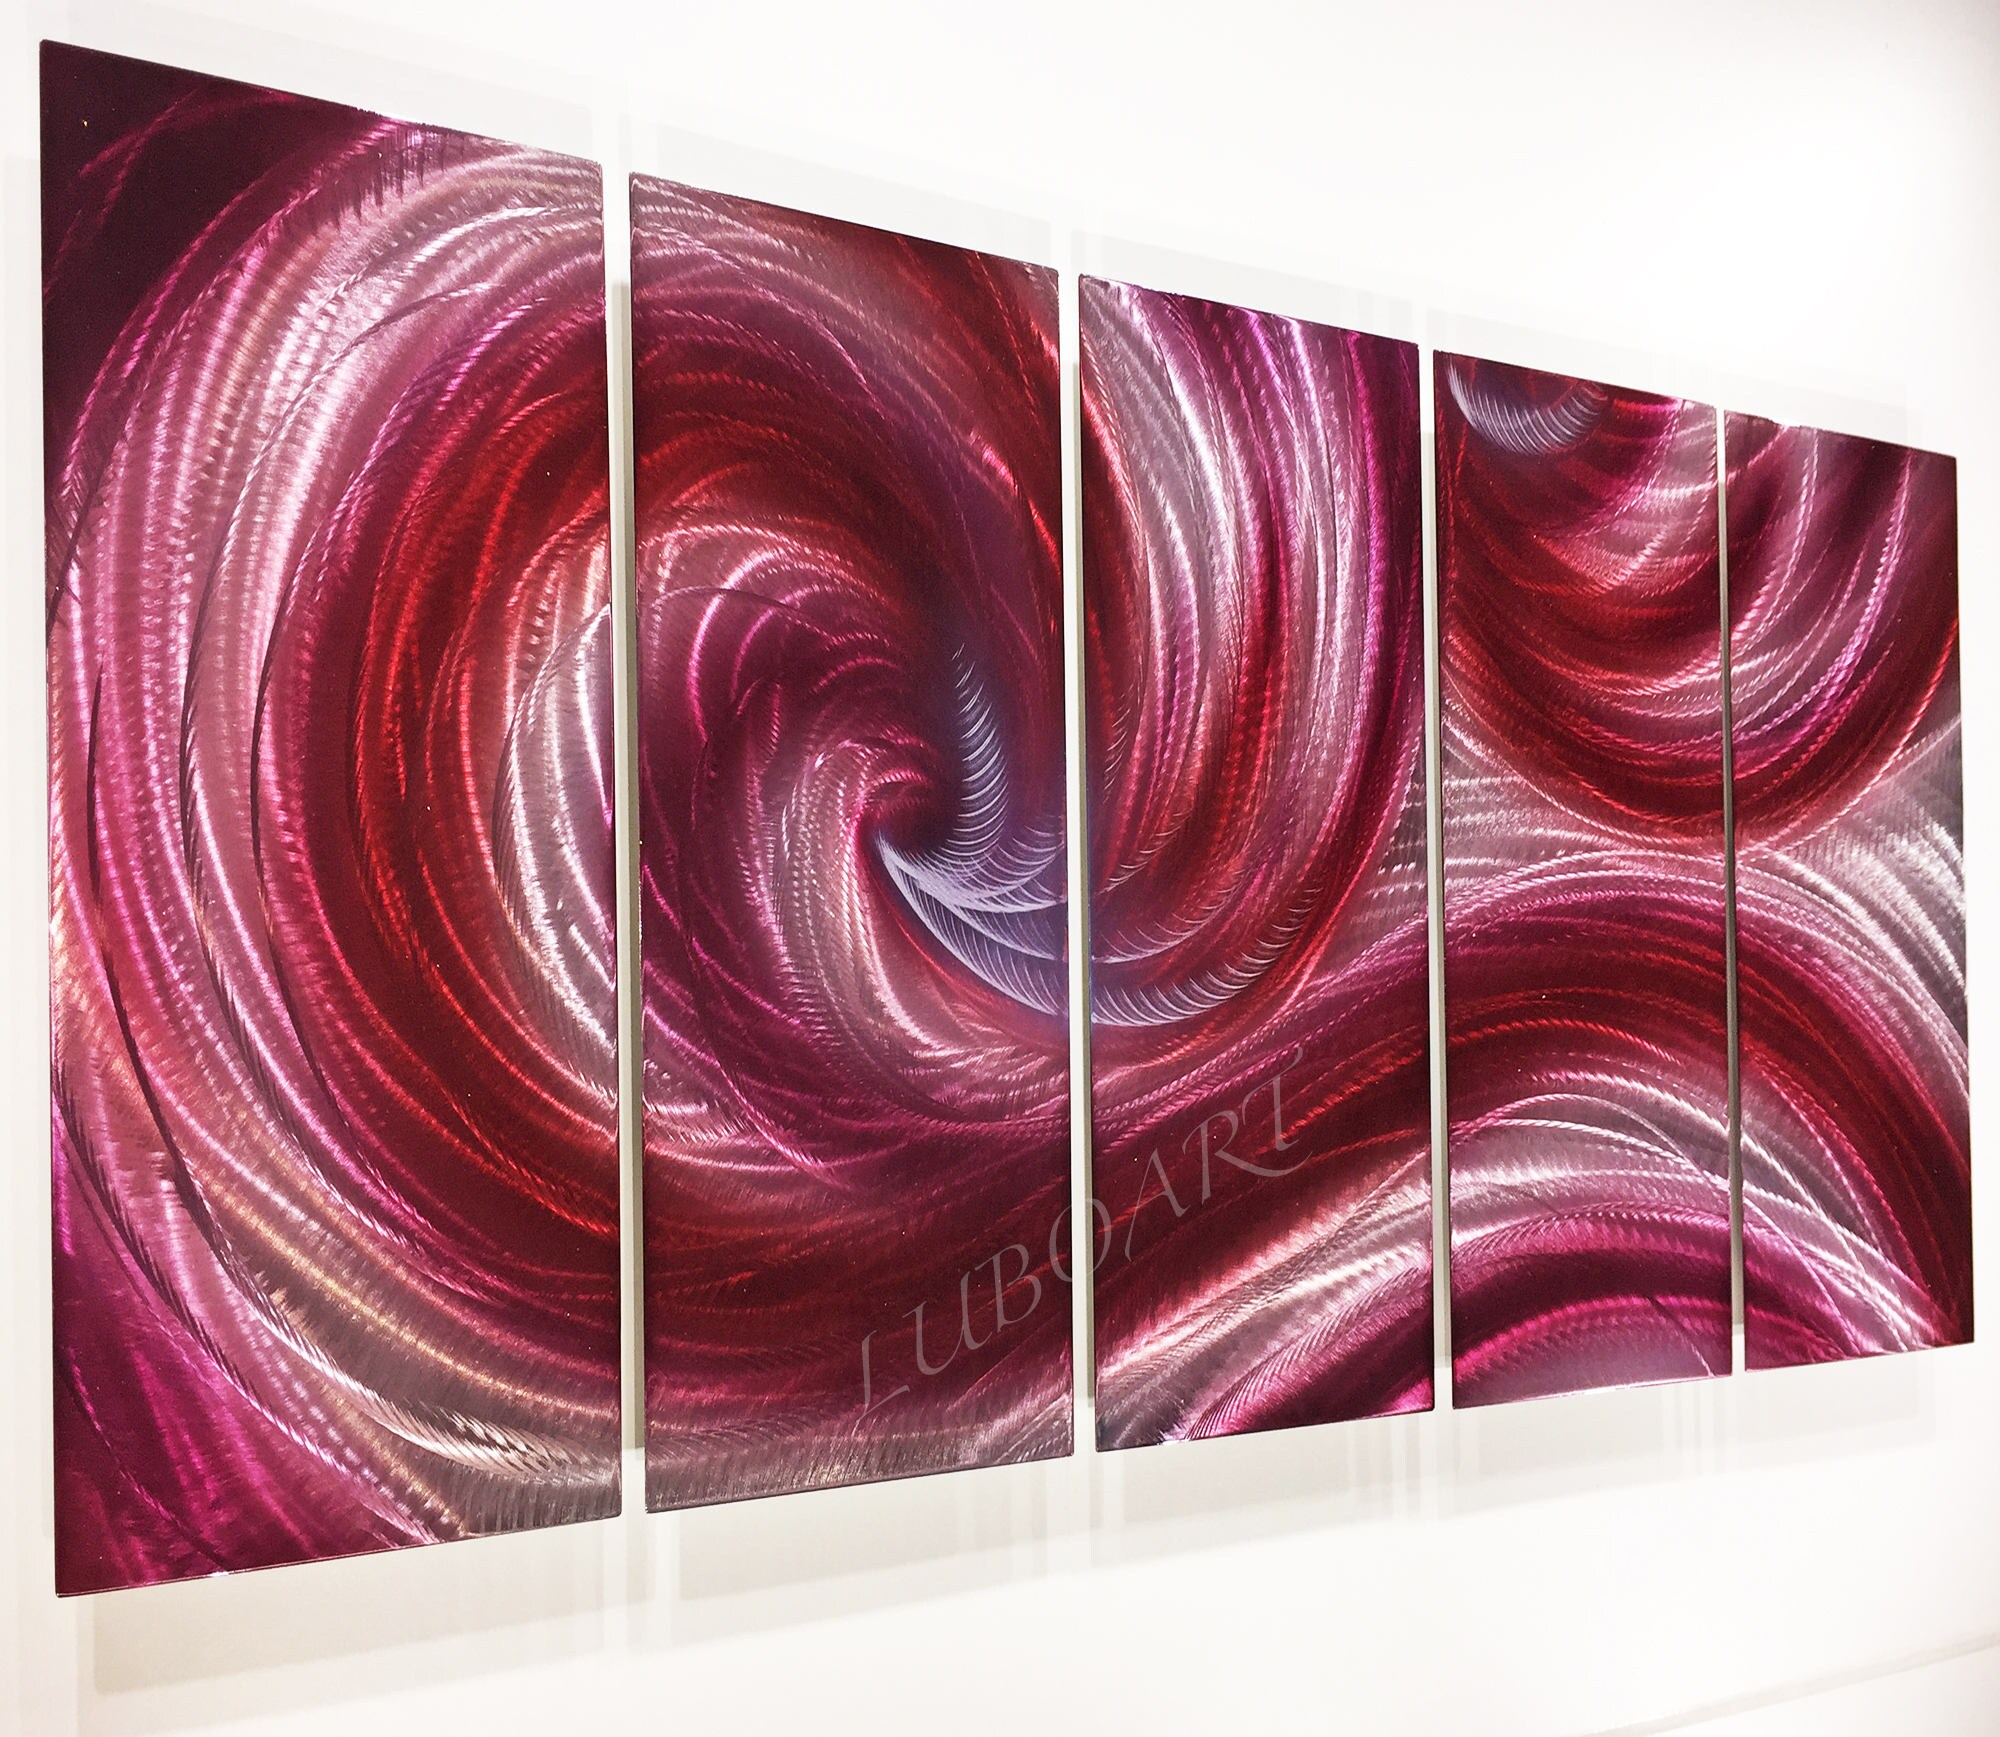 Abstract Metal Wall Art Contemporary Modern Decor Original Ocean Malerei Scribeemr Antiquitäten Kunst